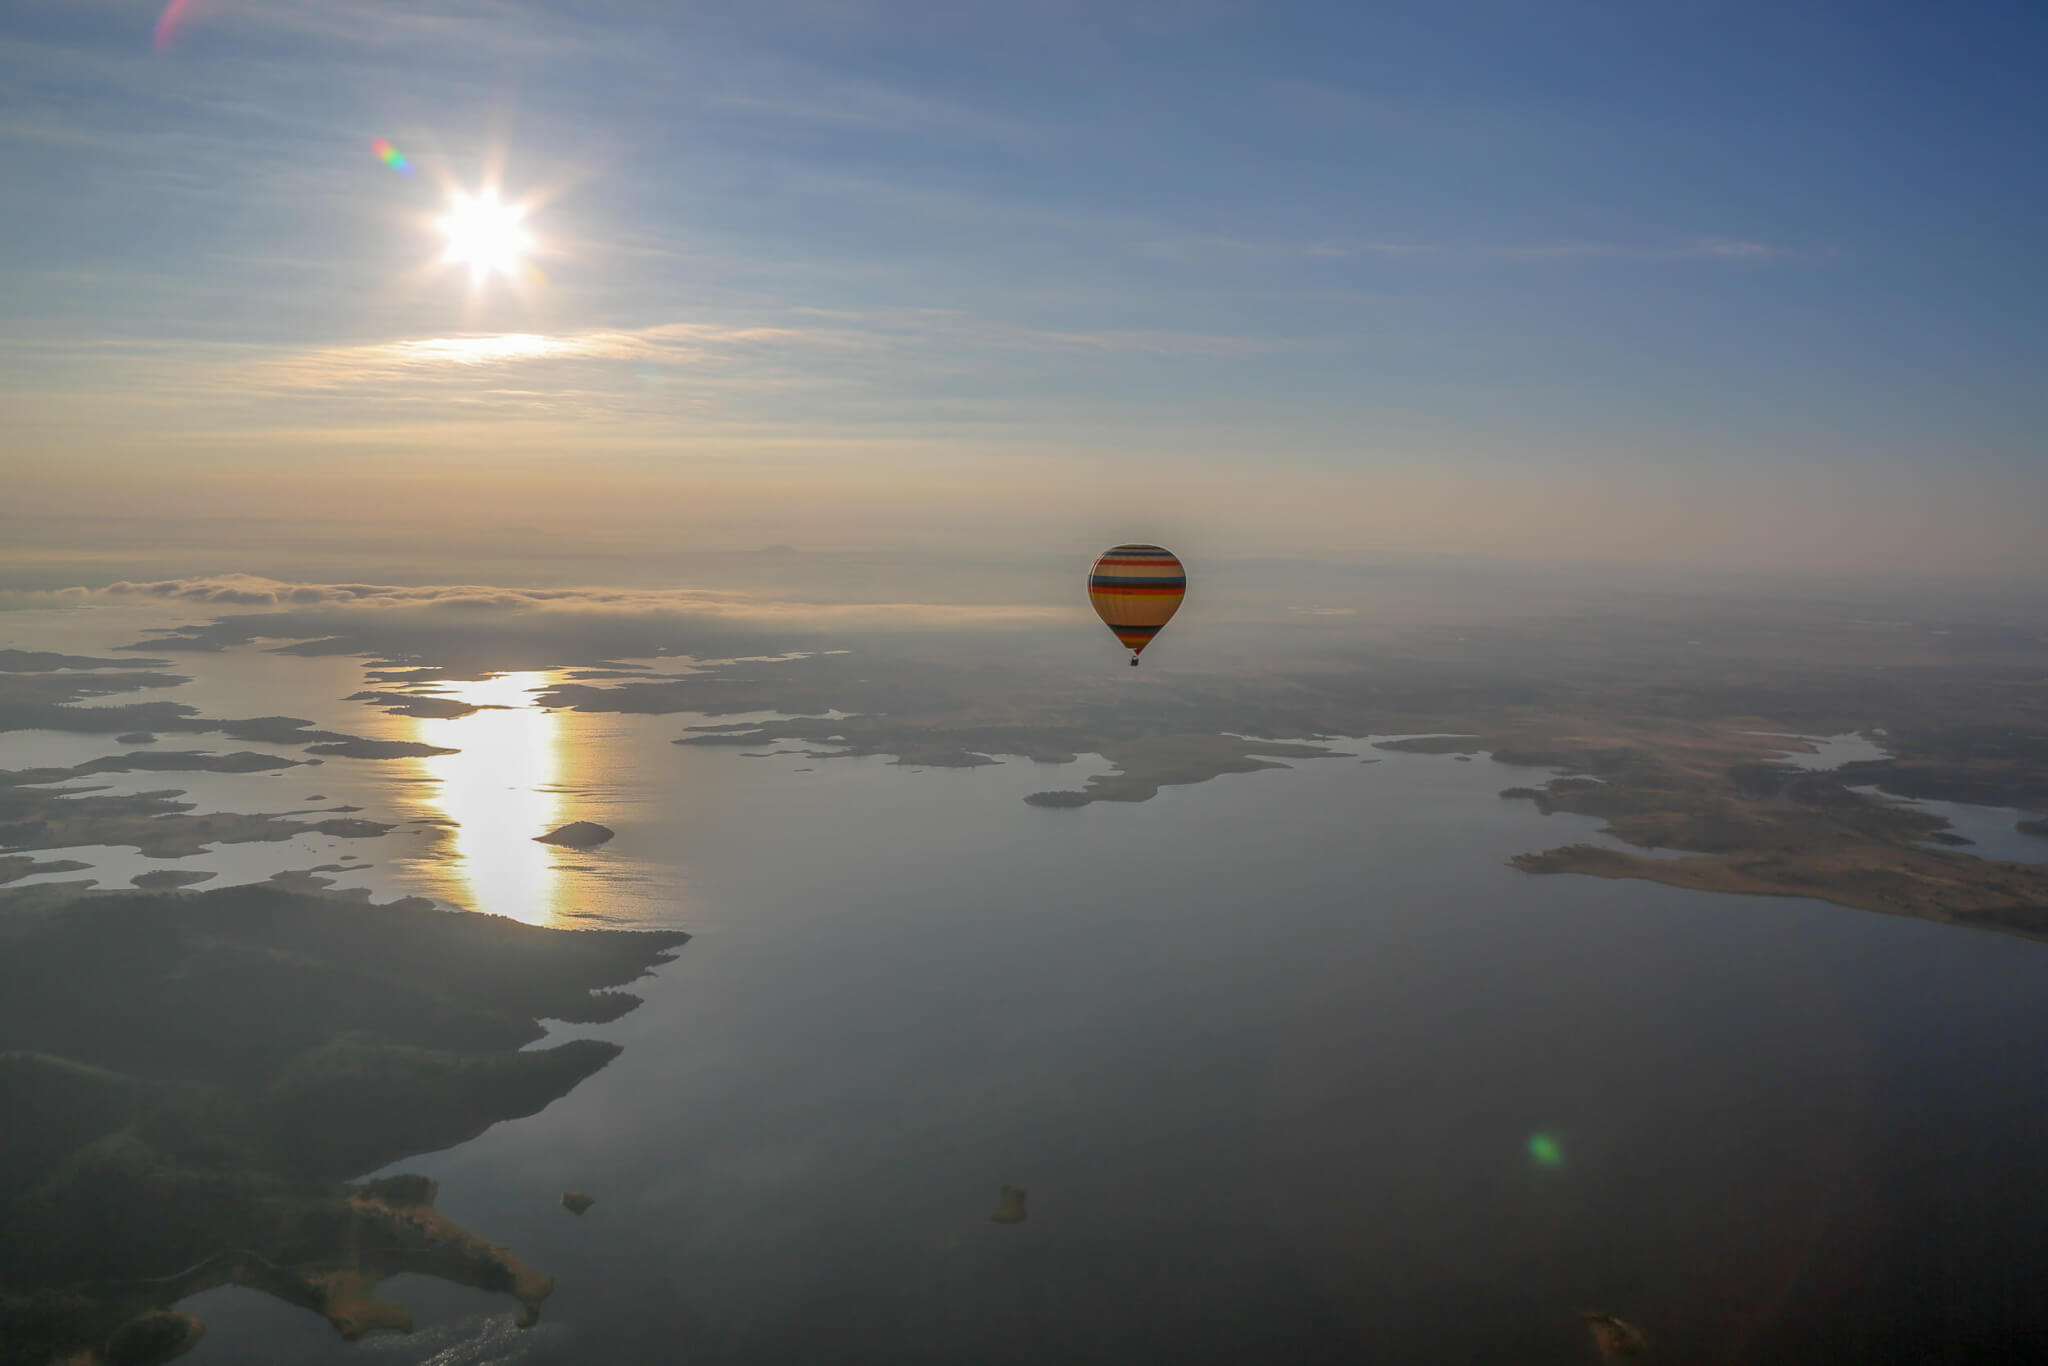 Balloon over Alqueva Reservoir at sunrise